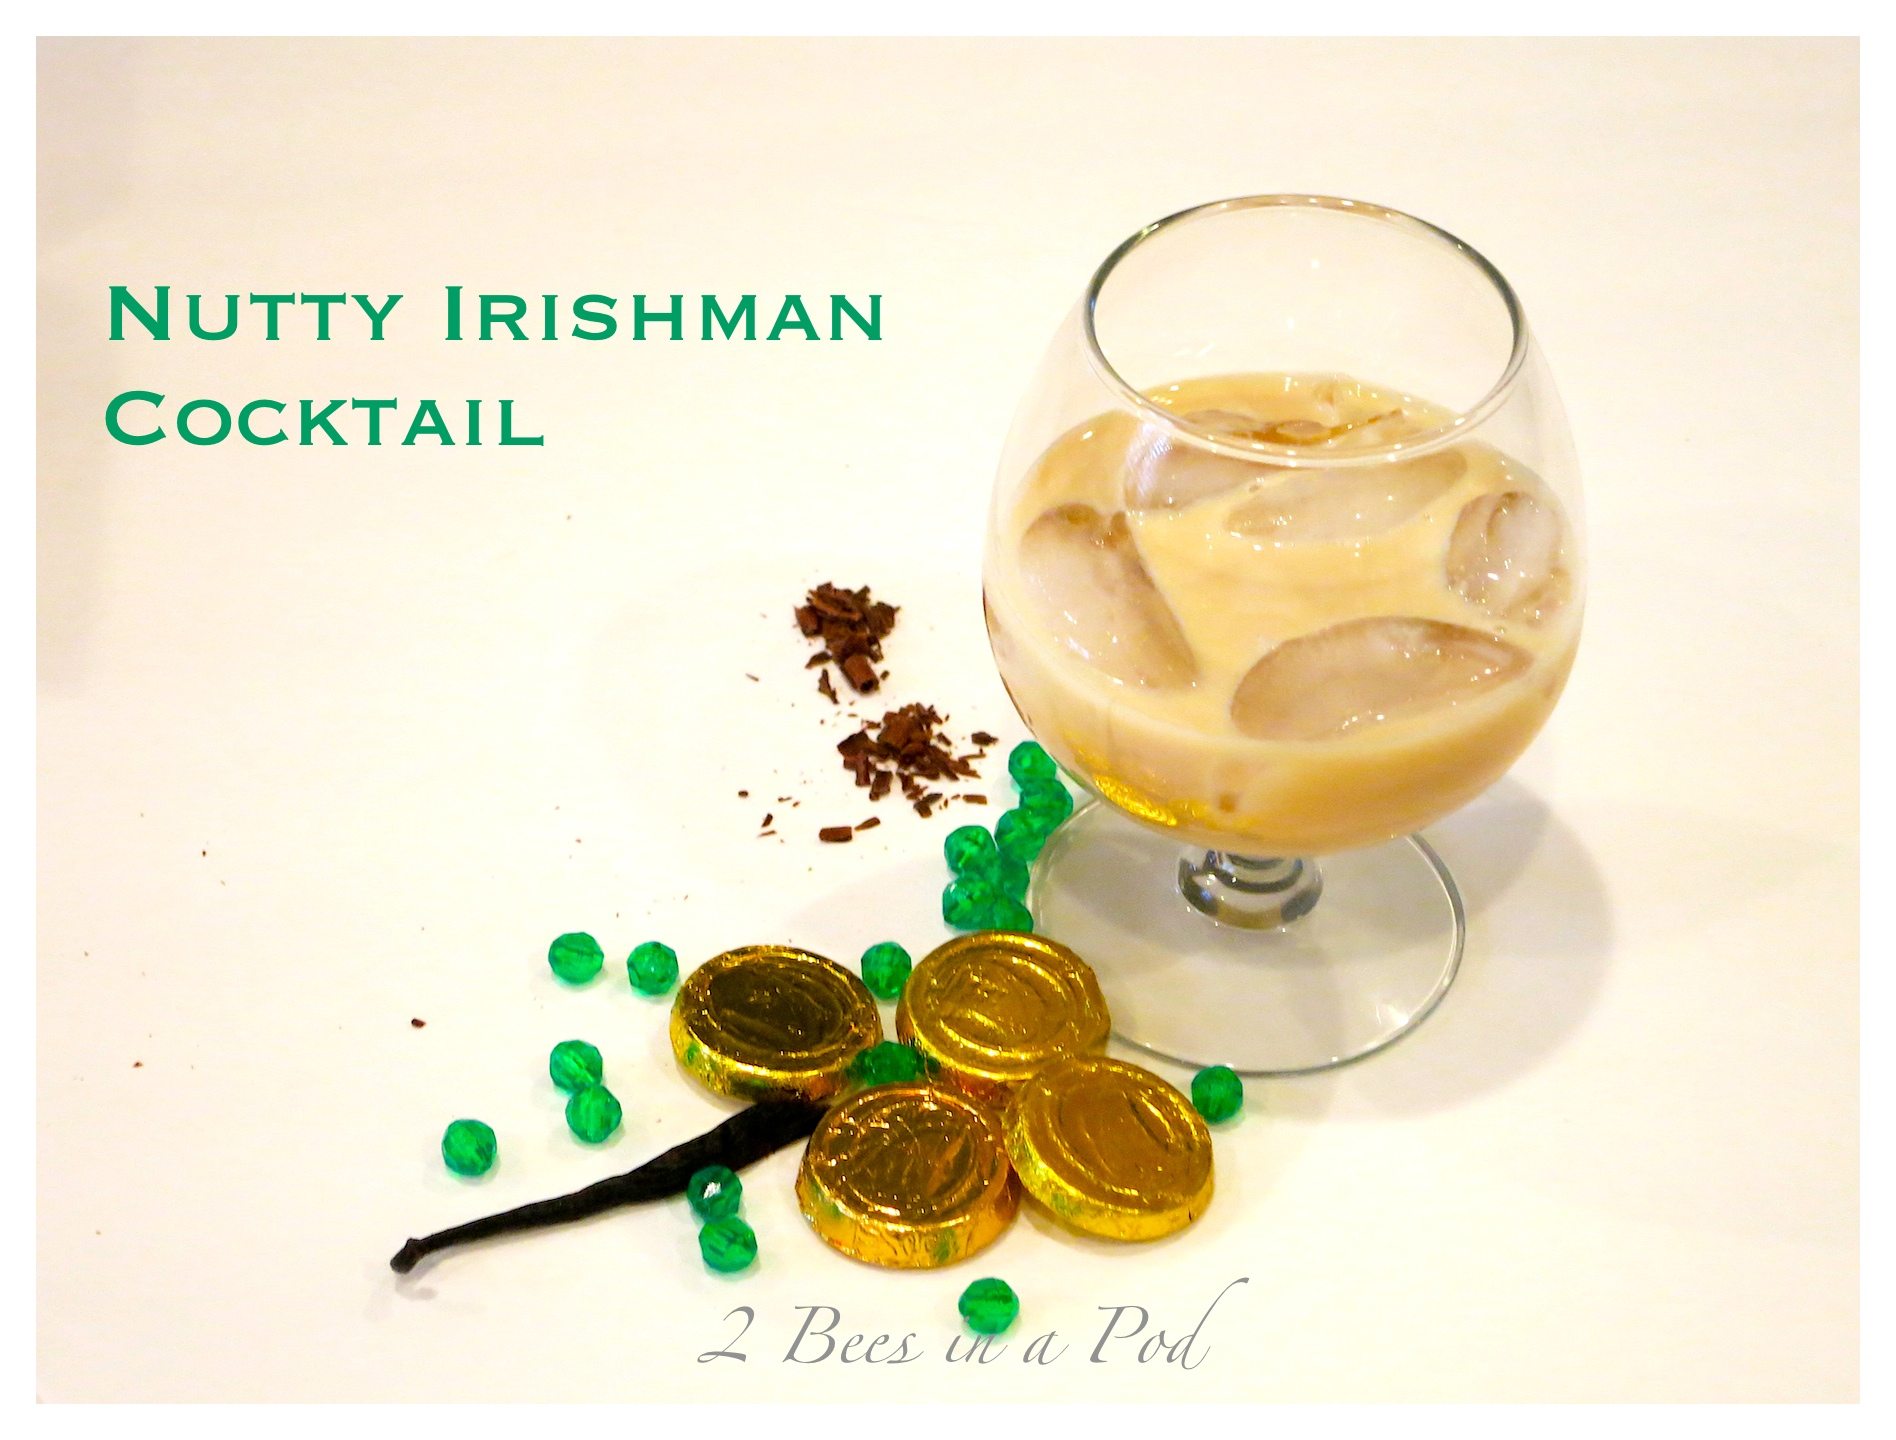 Nutty Irishman Cocktail - Creamy Bailey's Irish Cream and hazelnut Frangelico make for a wonderful cocktail!